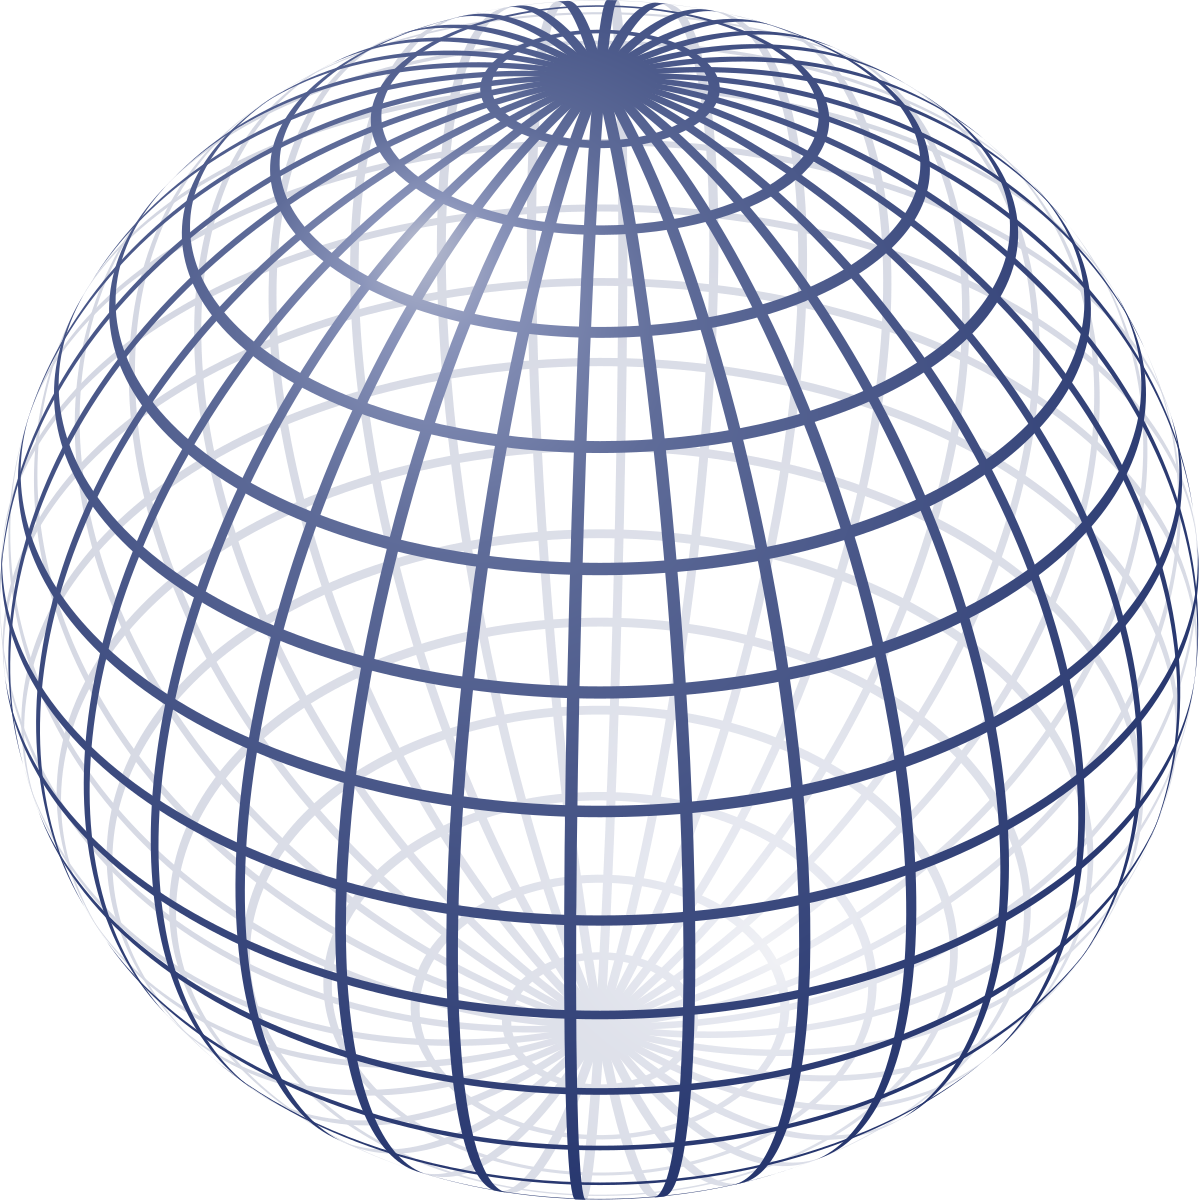 graphic free library Sphere wikipedia . Drawing reflections crystal ball